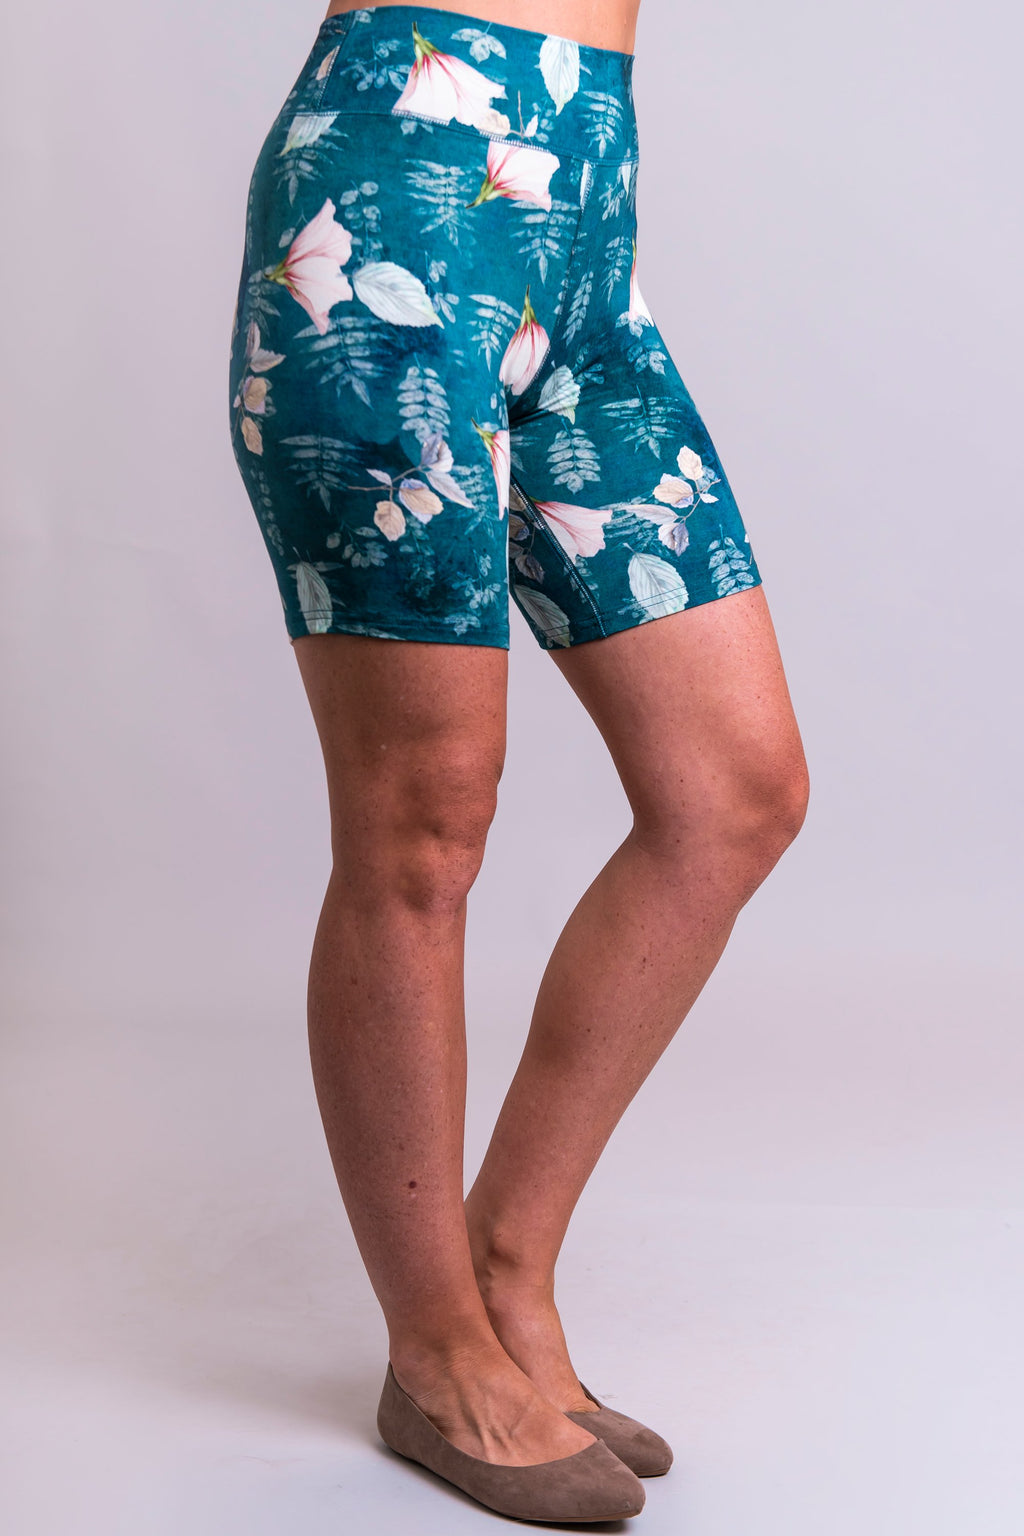 Hallie Undershorts, Water Lily, Bamboo - Blue Sky Clothing Co